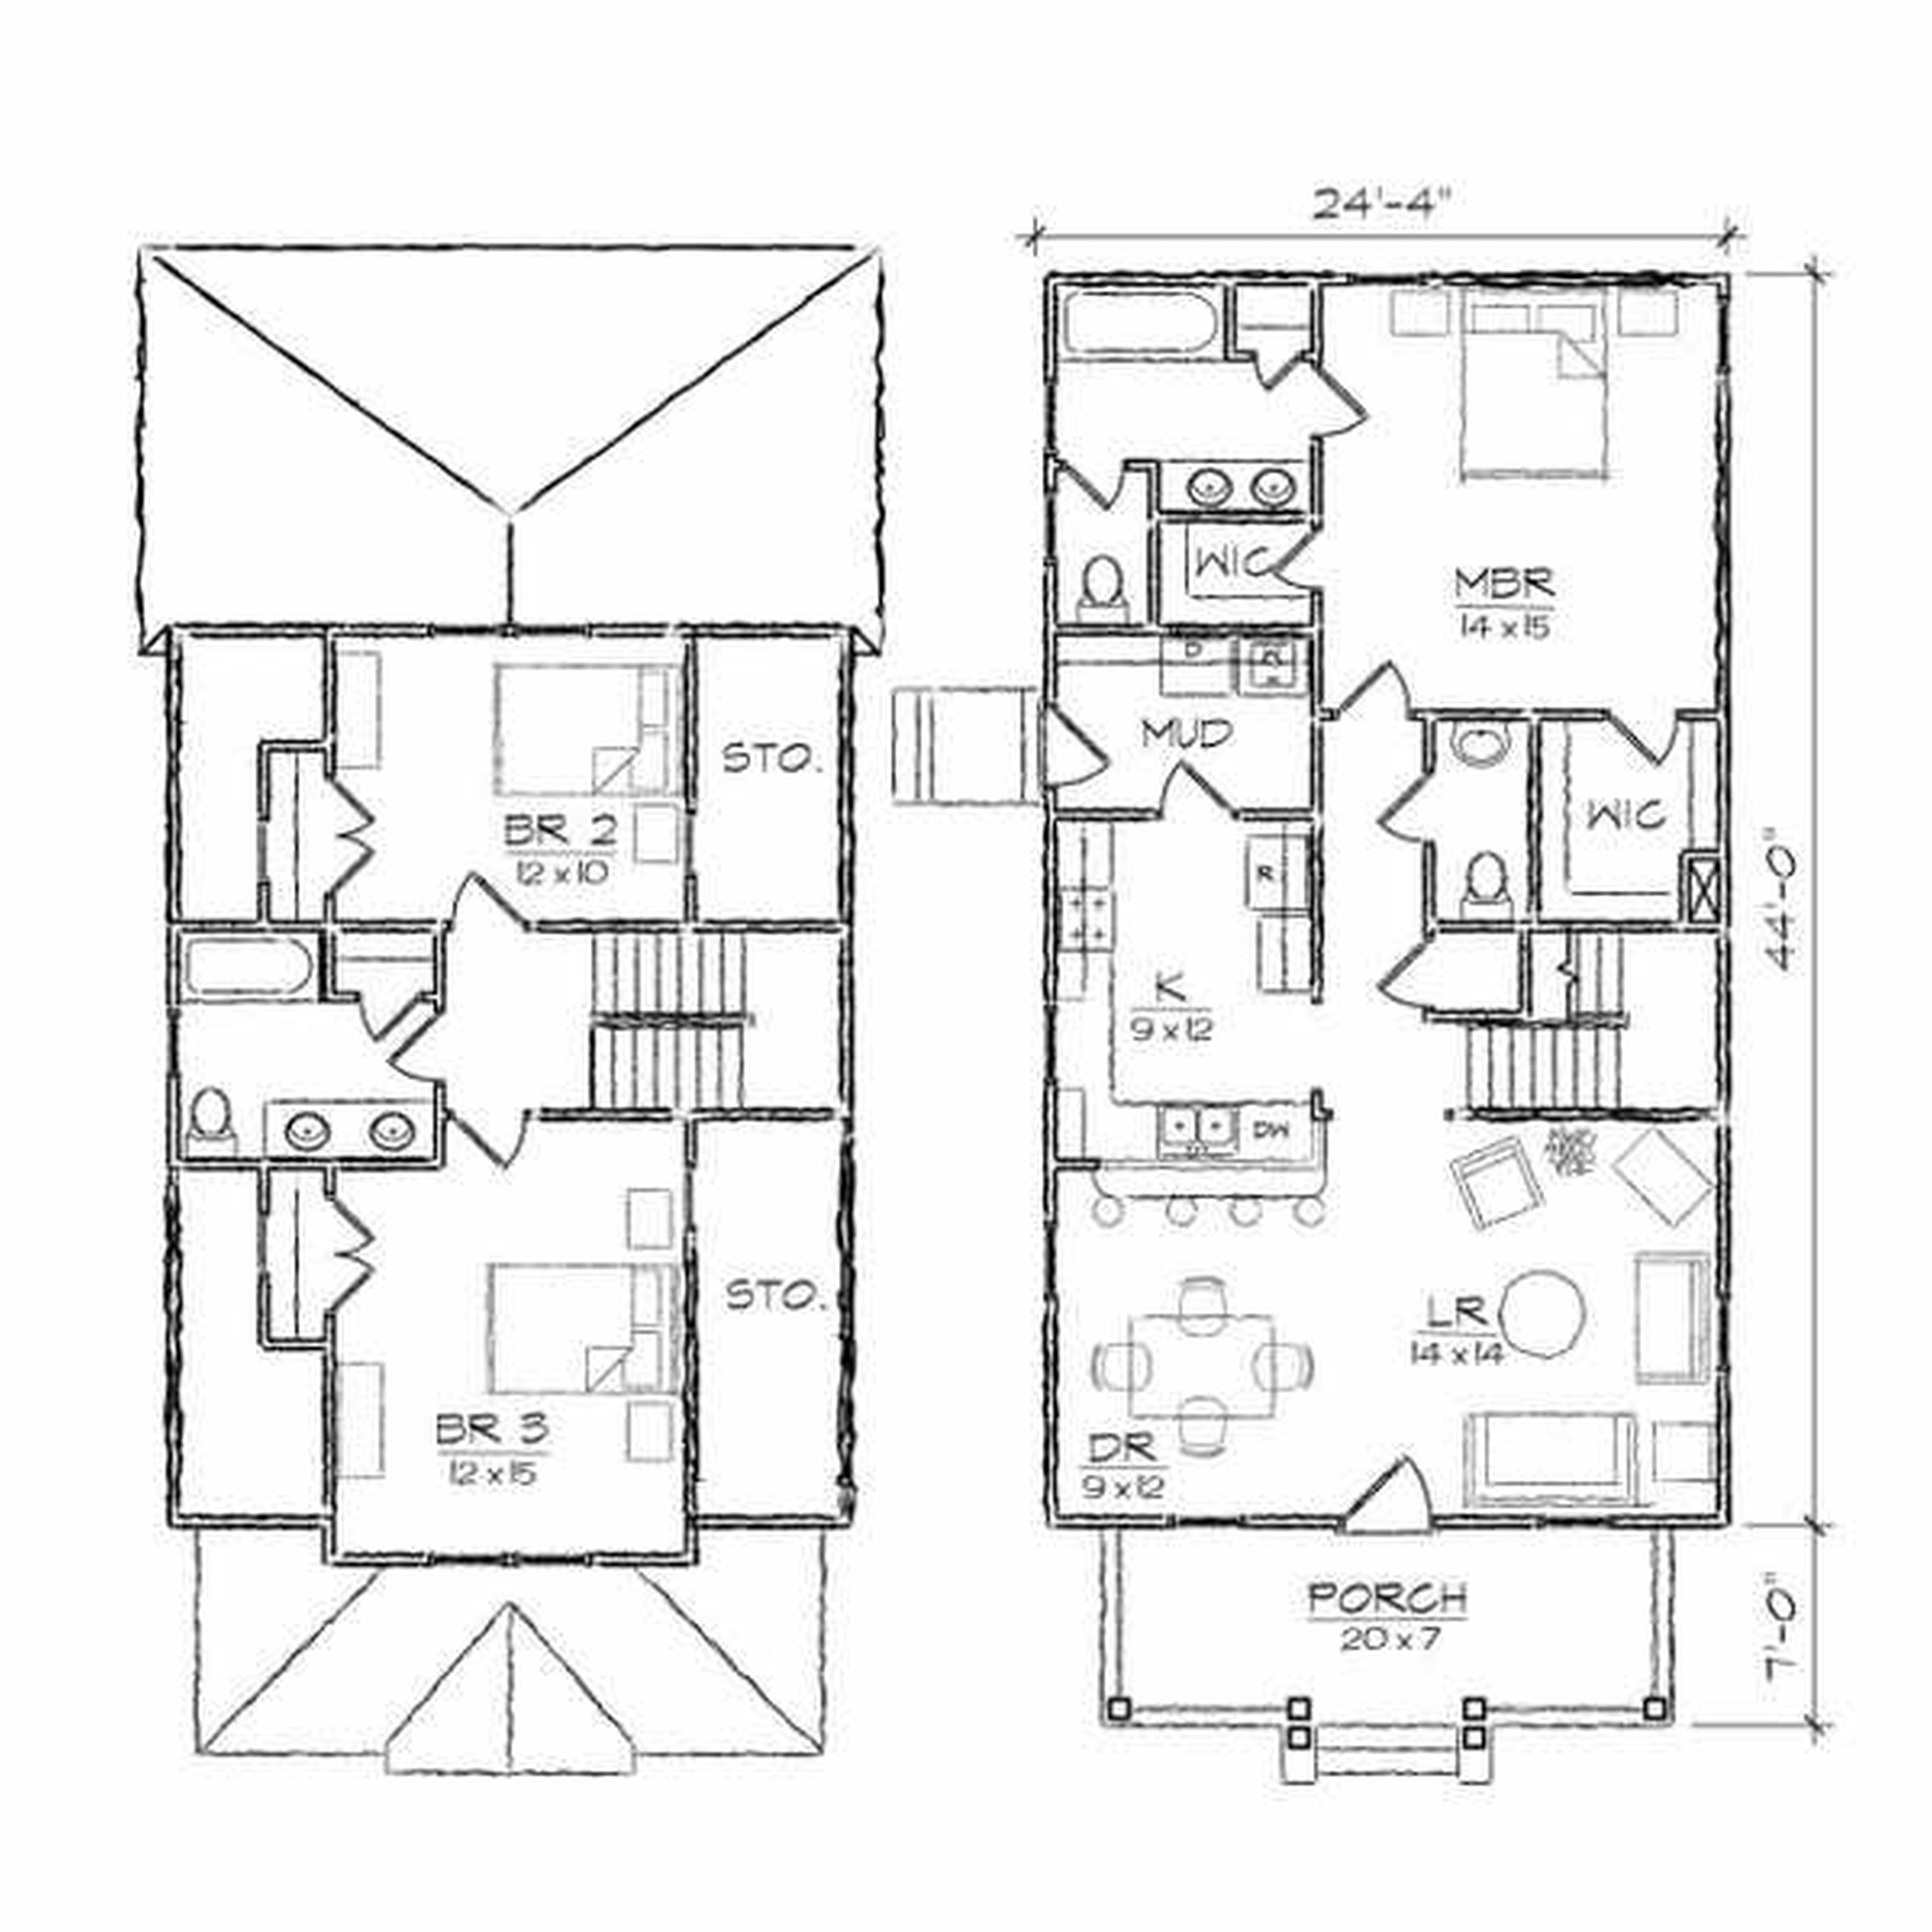 5000x5000 How To Draw A Floor Plan In Simple Steps Be Inspired Sippdrawing